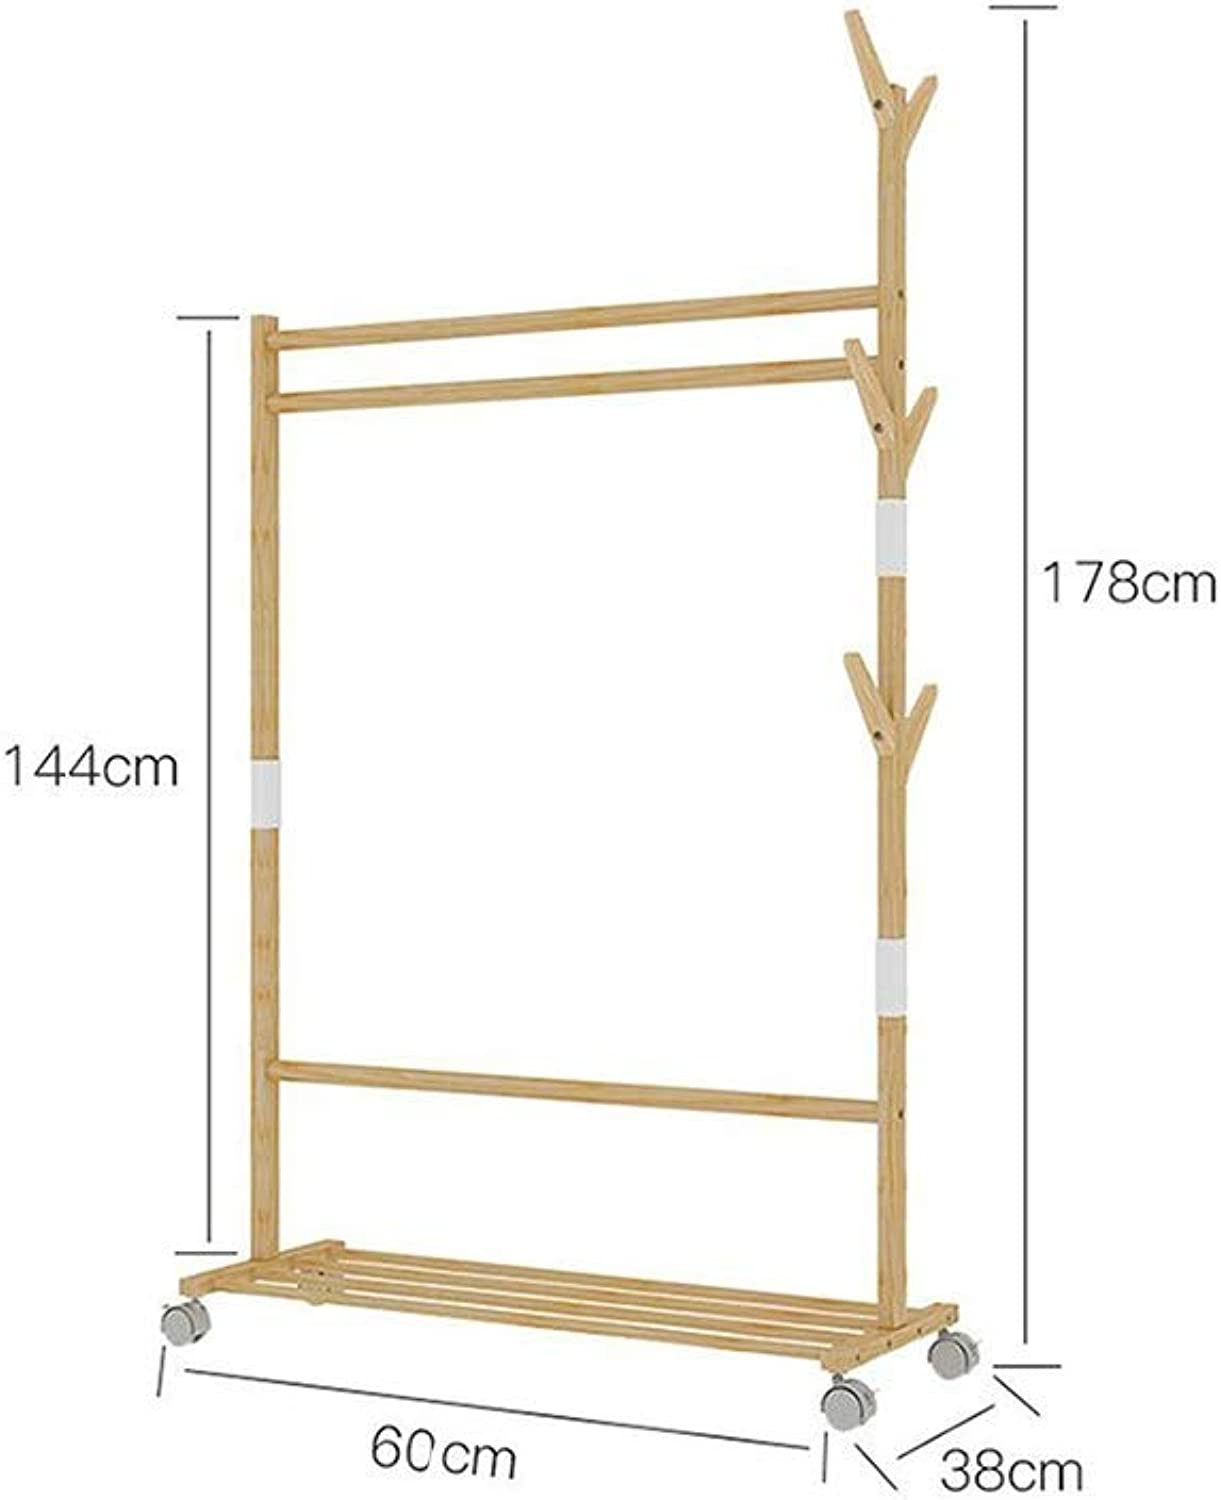 JIAYING Rolling Garment Rack ,Wood Clothes Rack,Freestanding Garment Organizer with 1-Tier Storage Shelves and 4 Coat Hooks for shoes, Clothing,Hat (Size   60×38×178CM)